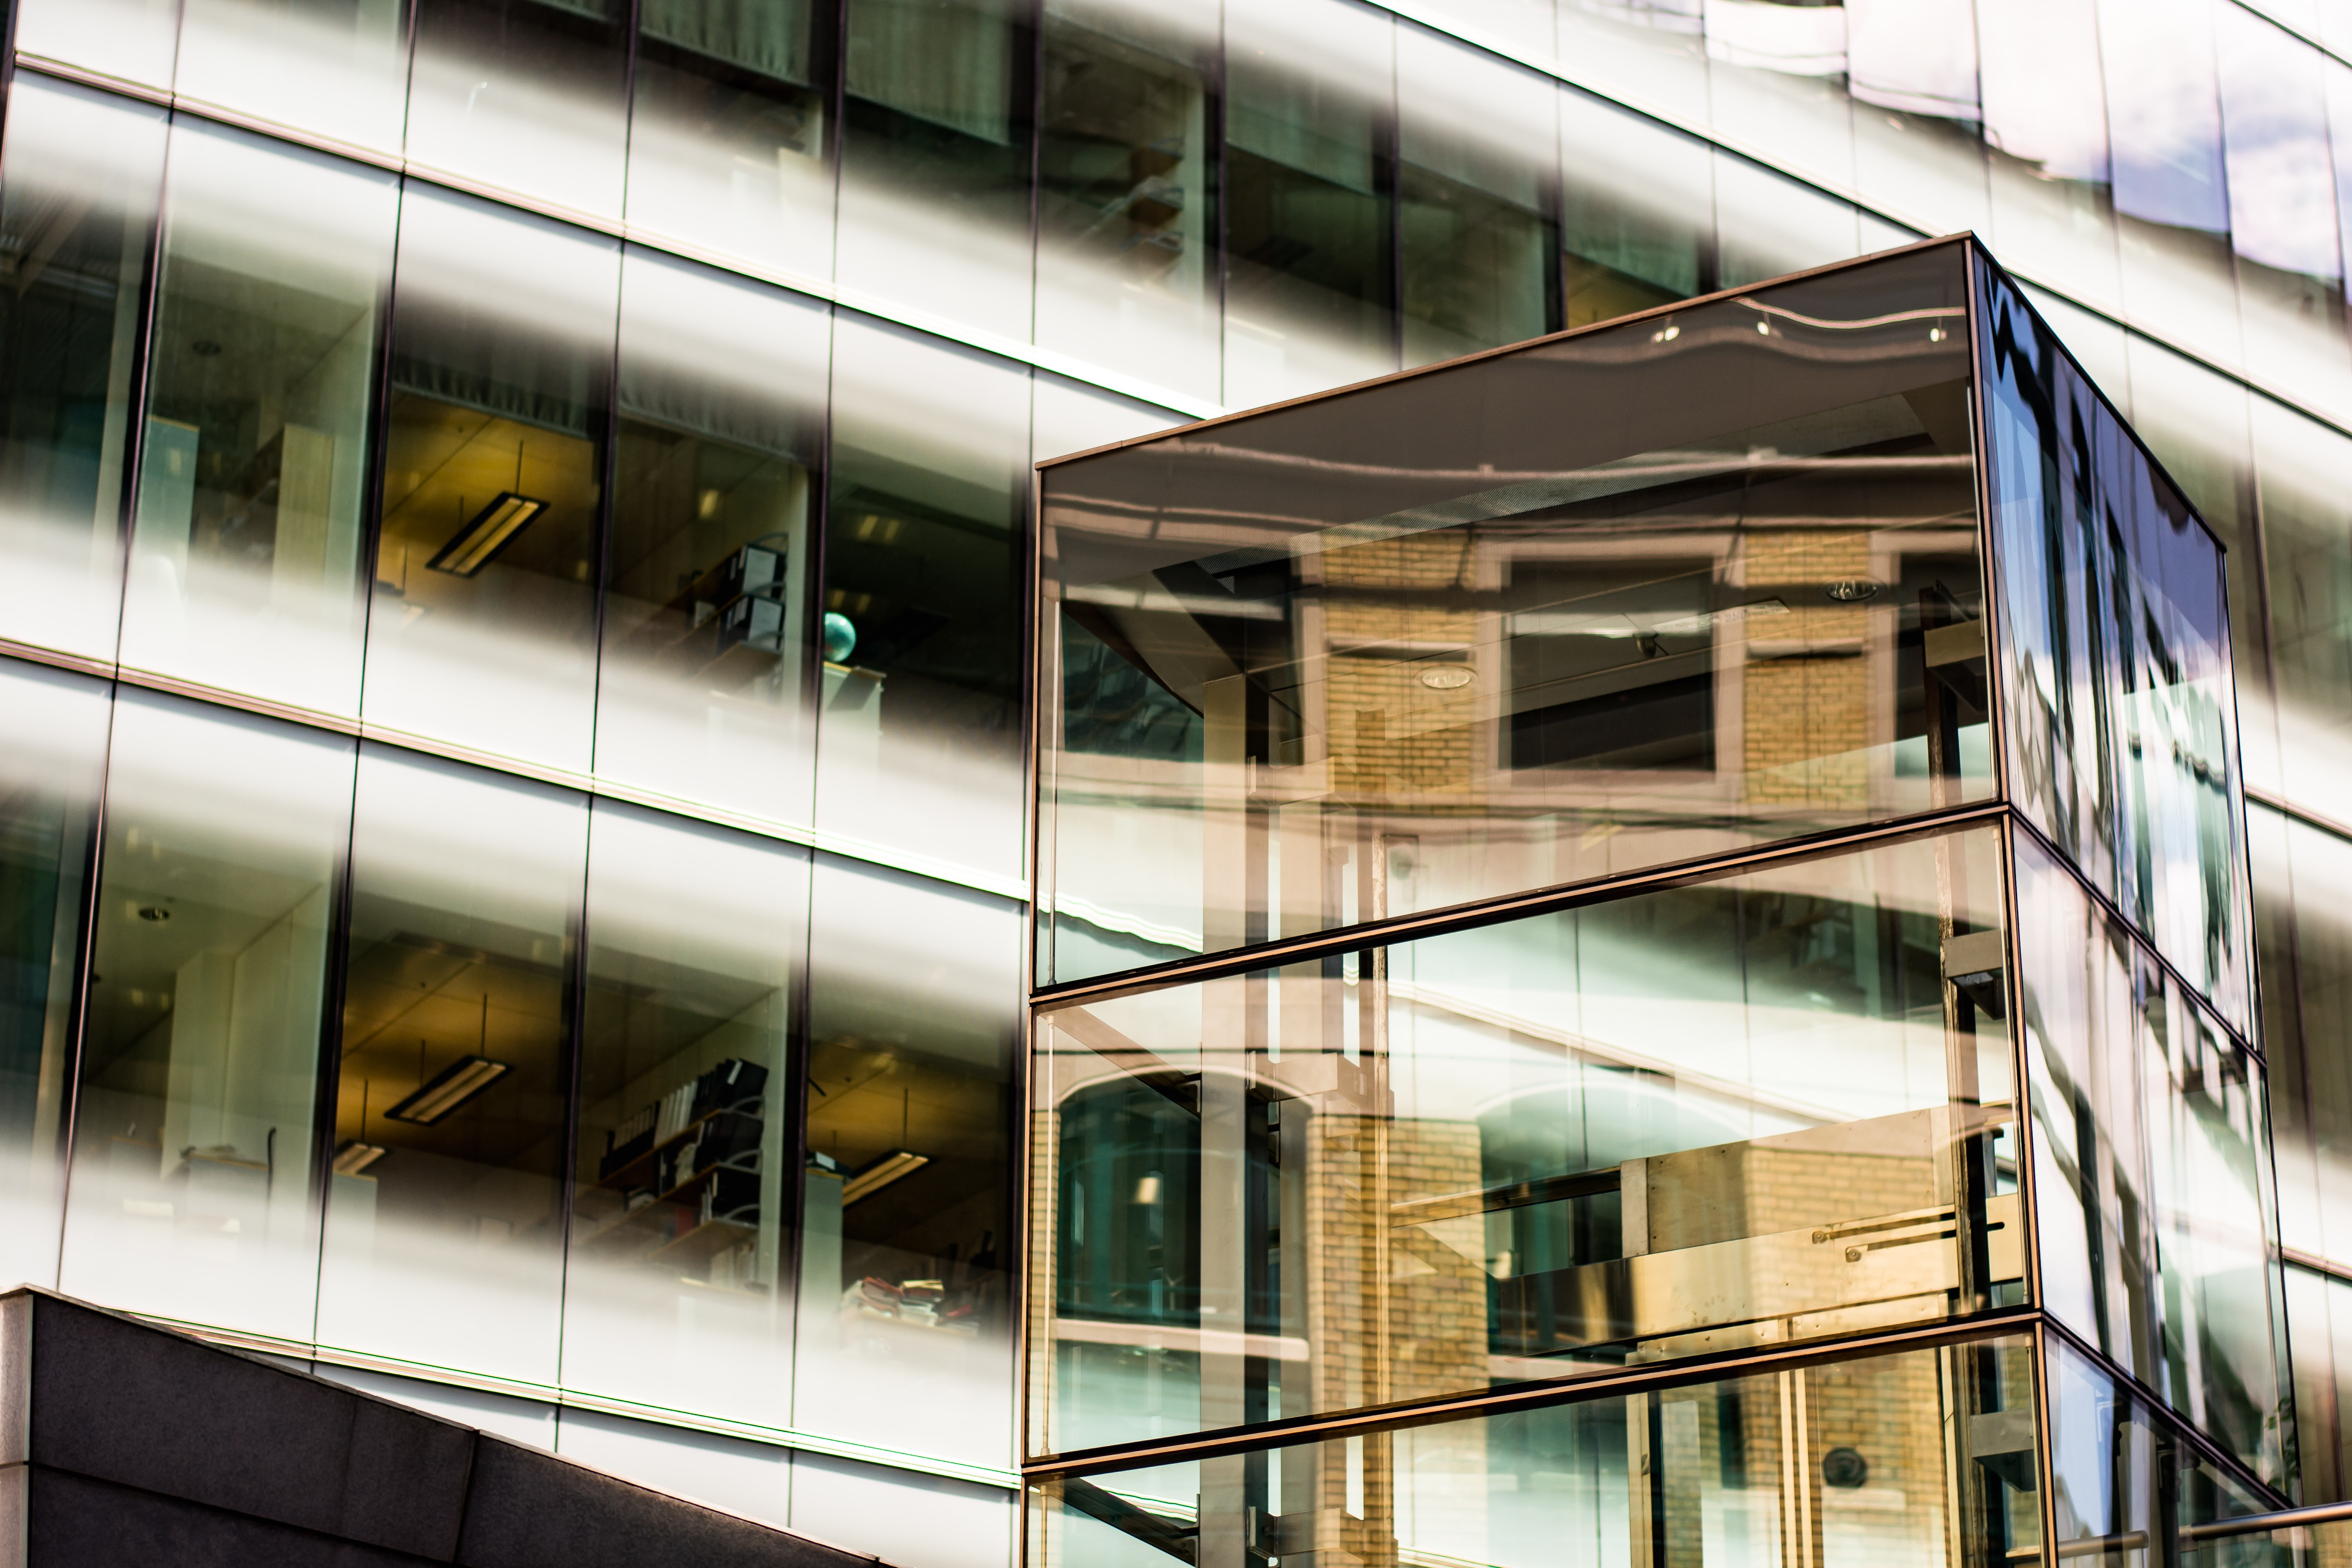 Floor-to-ceiling windows of an office building seen from outside